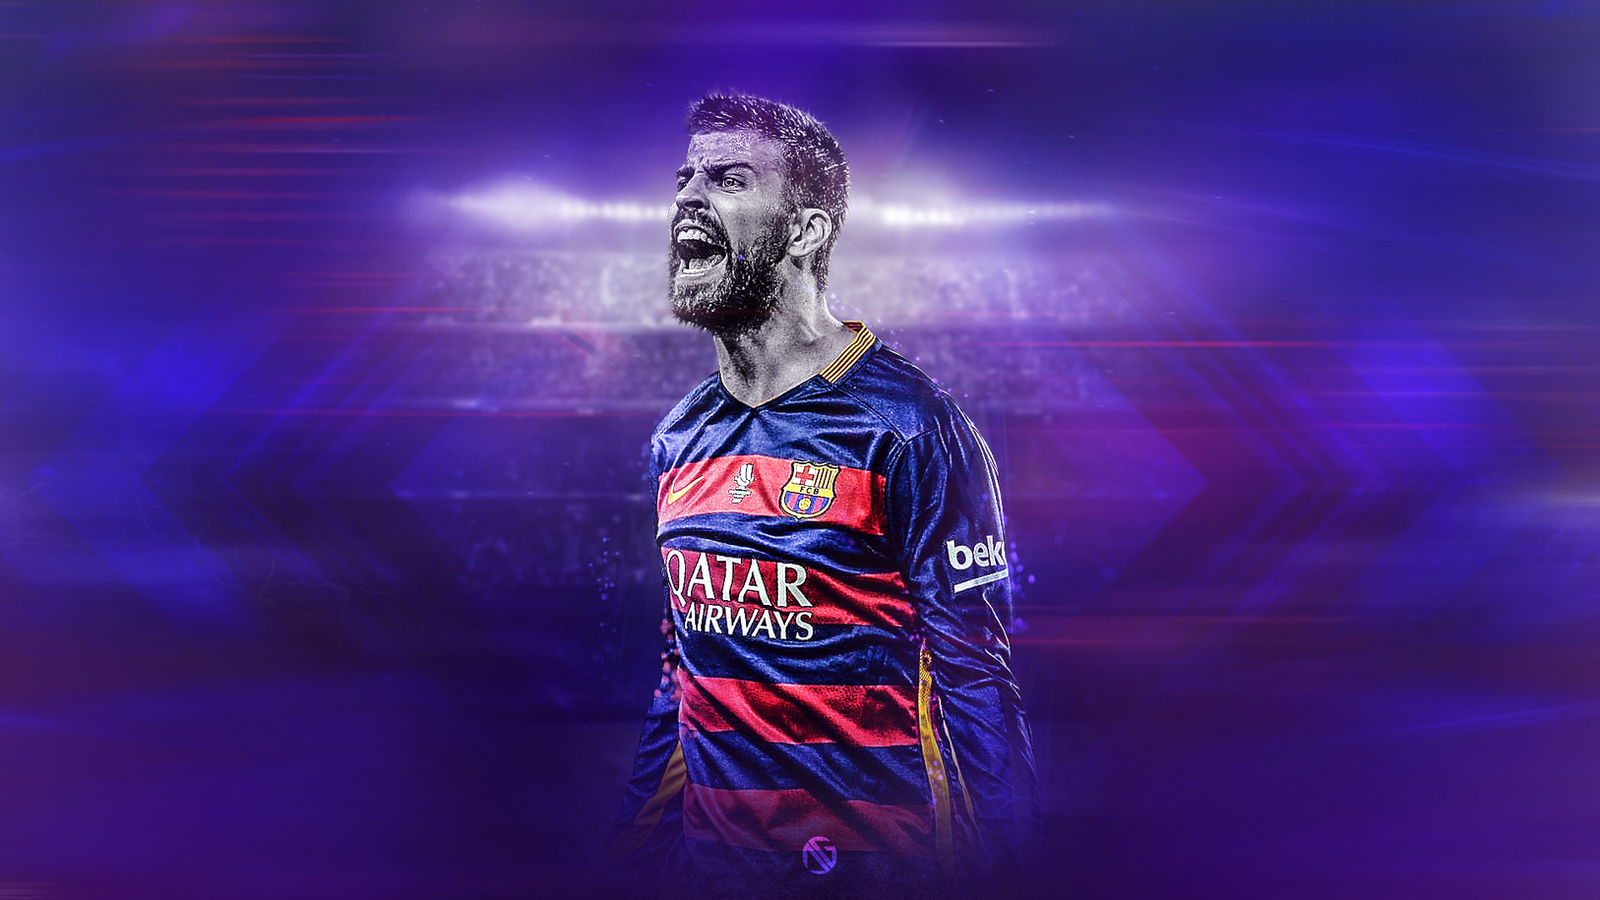 [Imagem: gerard_pique_wallpaper_2016_by_dreamgrap...9if1ch.png]